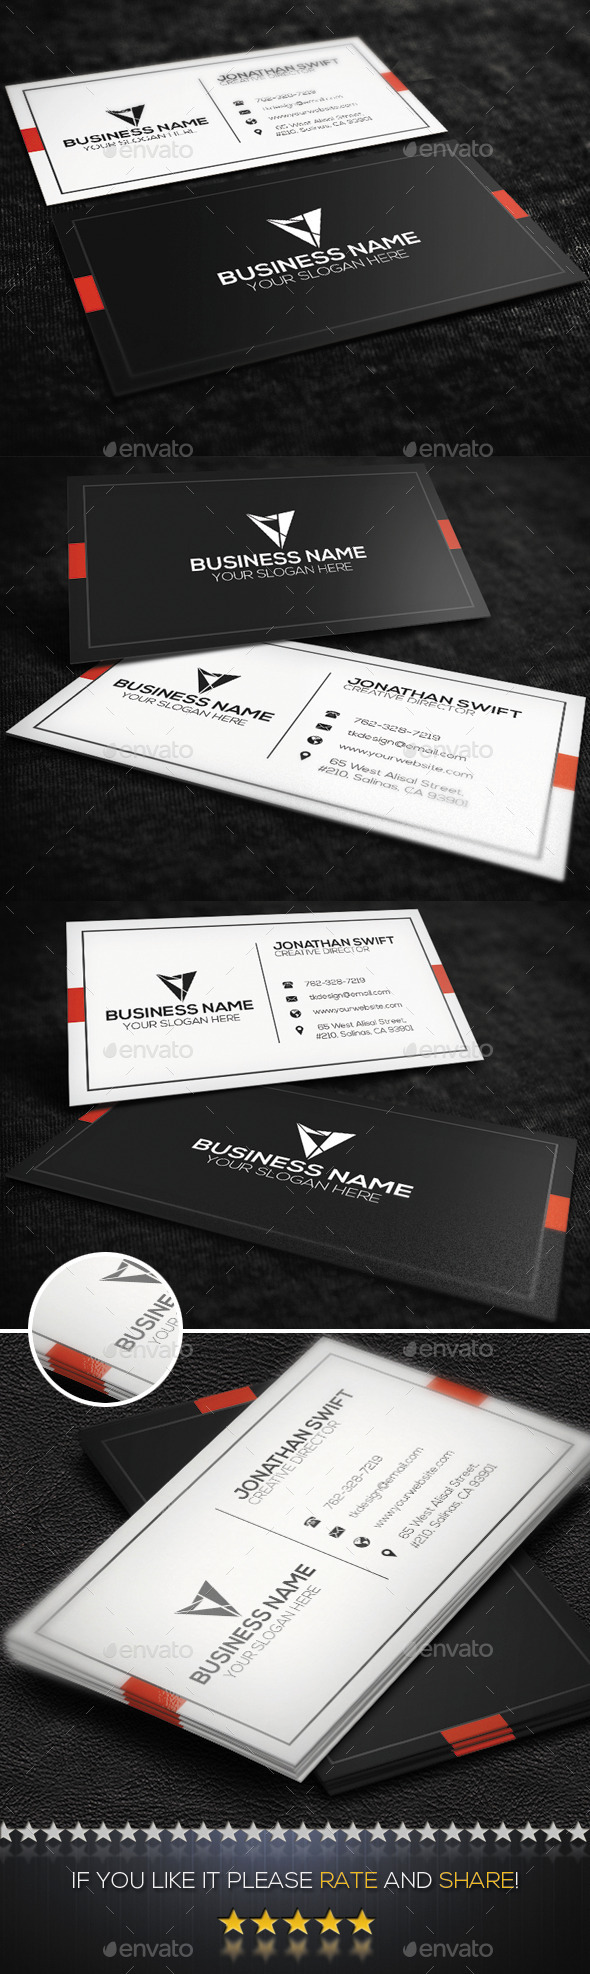 GraphicRiver Corporate Business Card No.06 9358781